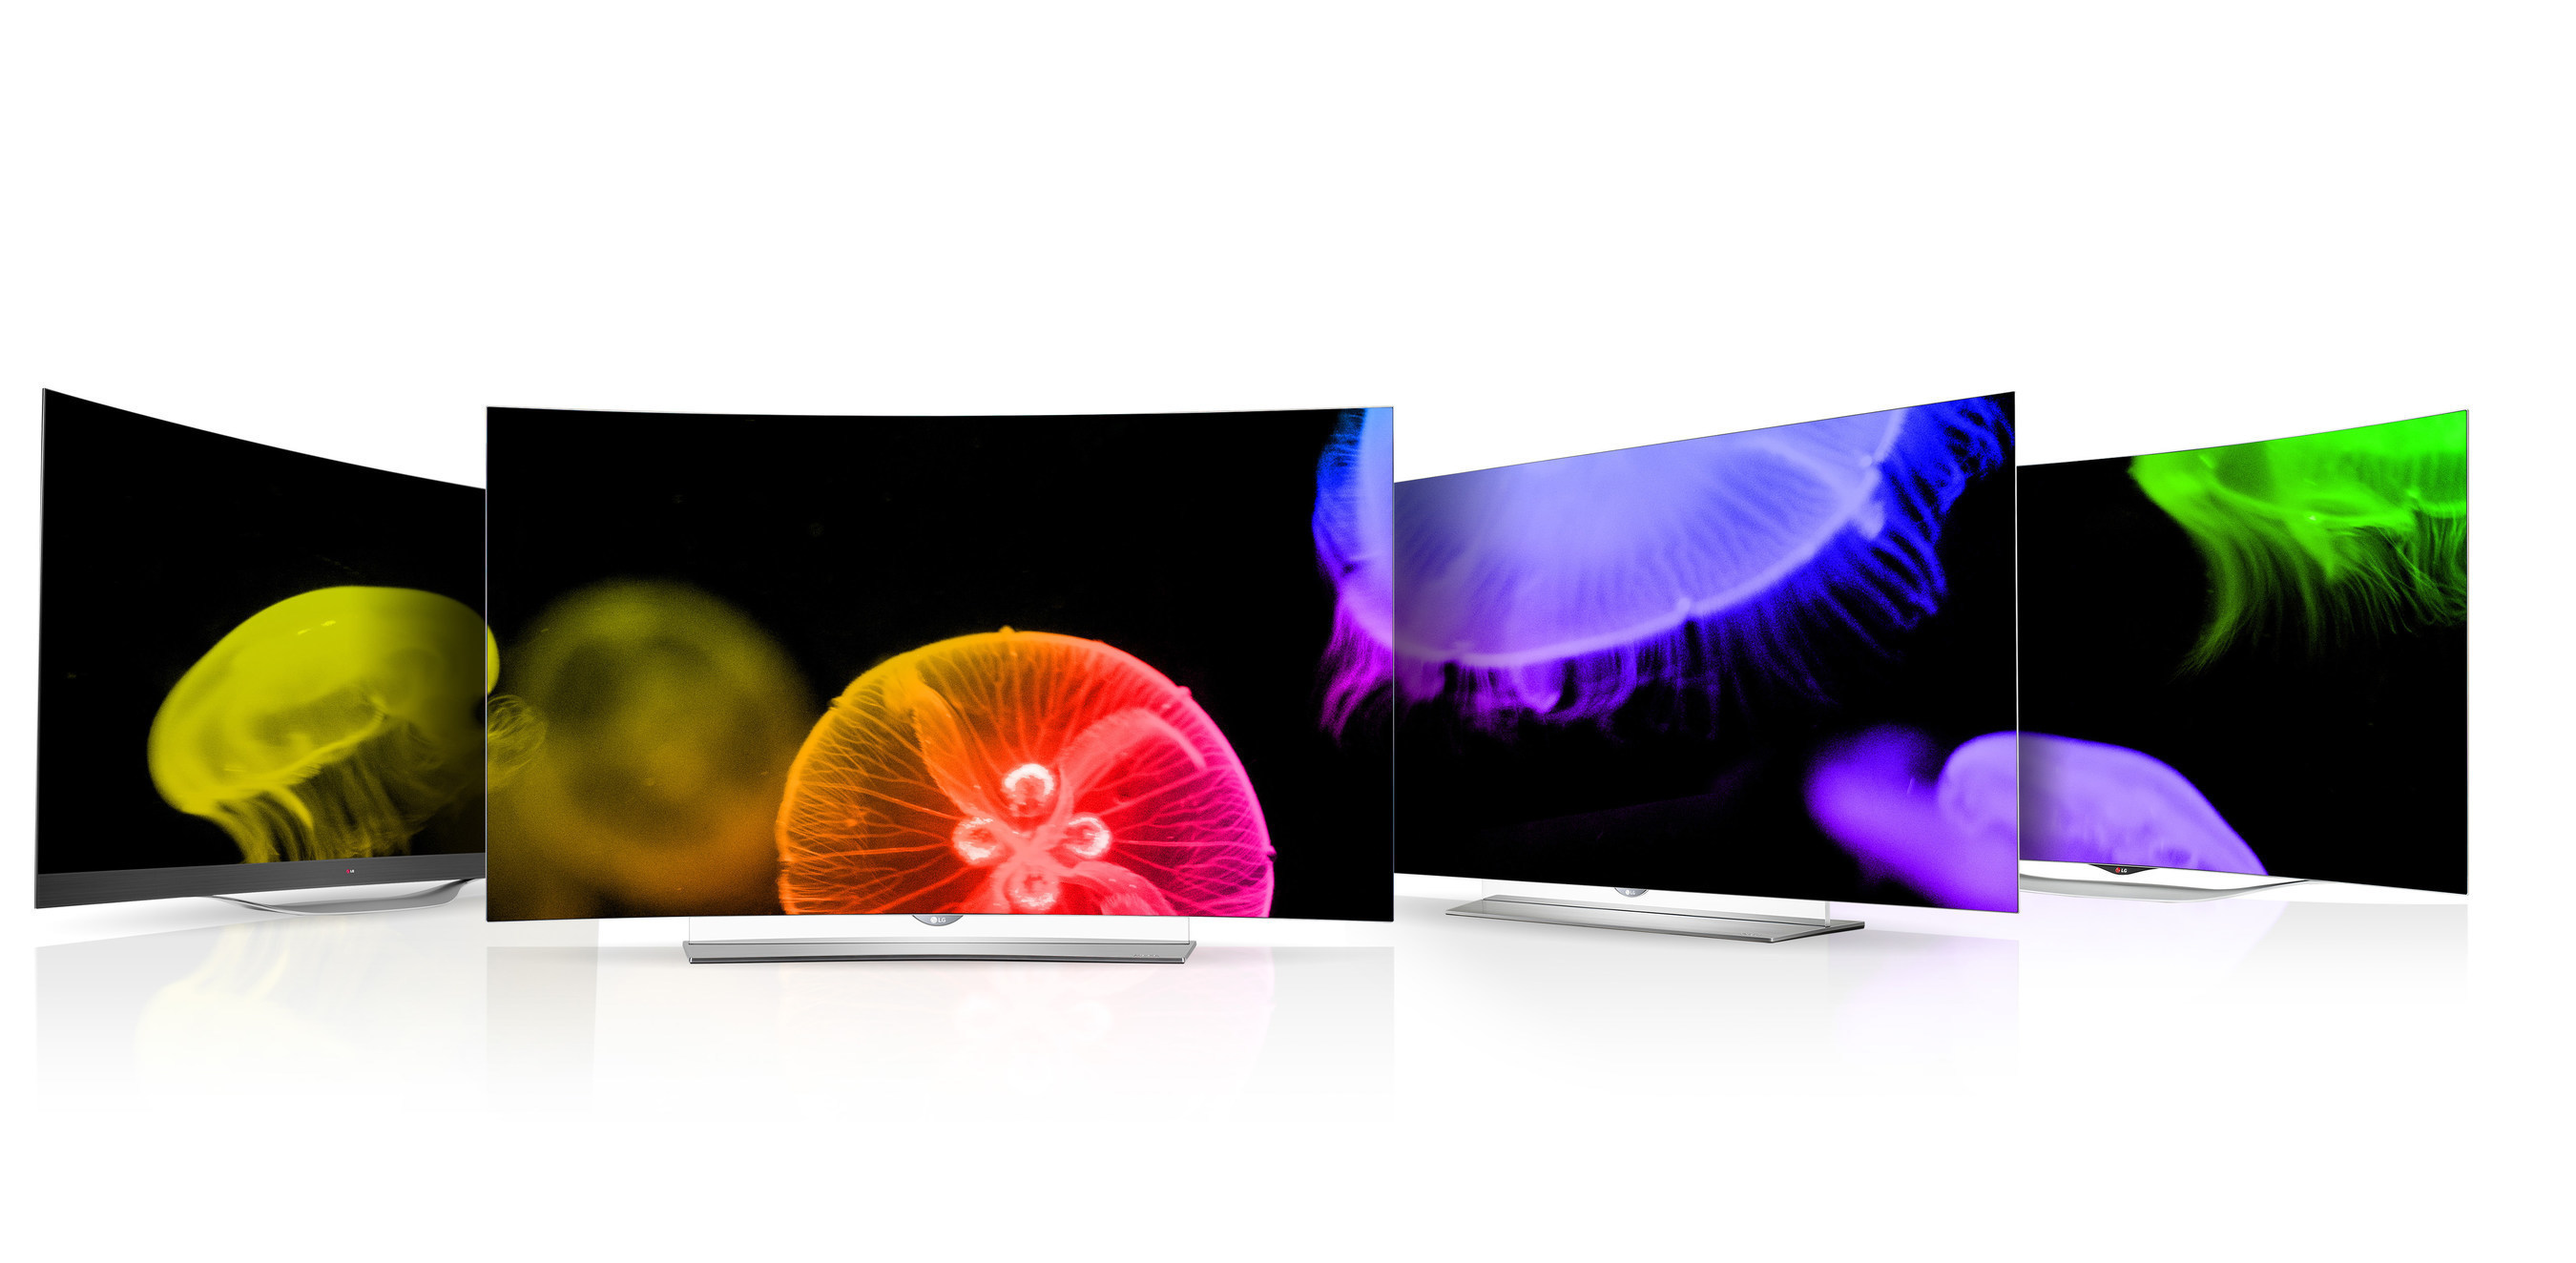 LG Electronics USA today announced pricing and availability for the latest addition to its OLED family of televisions - the EF9500 flat OLED 4K TV series - scheduled to begin arriving at retailers nationwide in September. With its retail launch, LG now offers OLED TVs in 55-, 65-, and 77-inch class sizes, both curved and flat configurations, and 1080p and 4K resolutions.